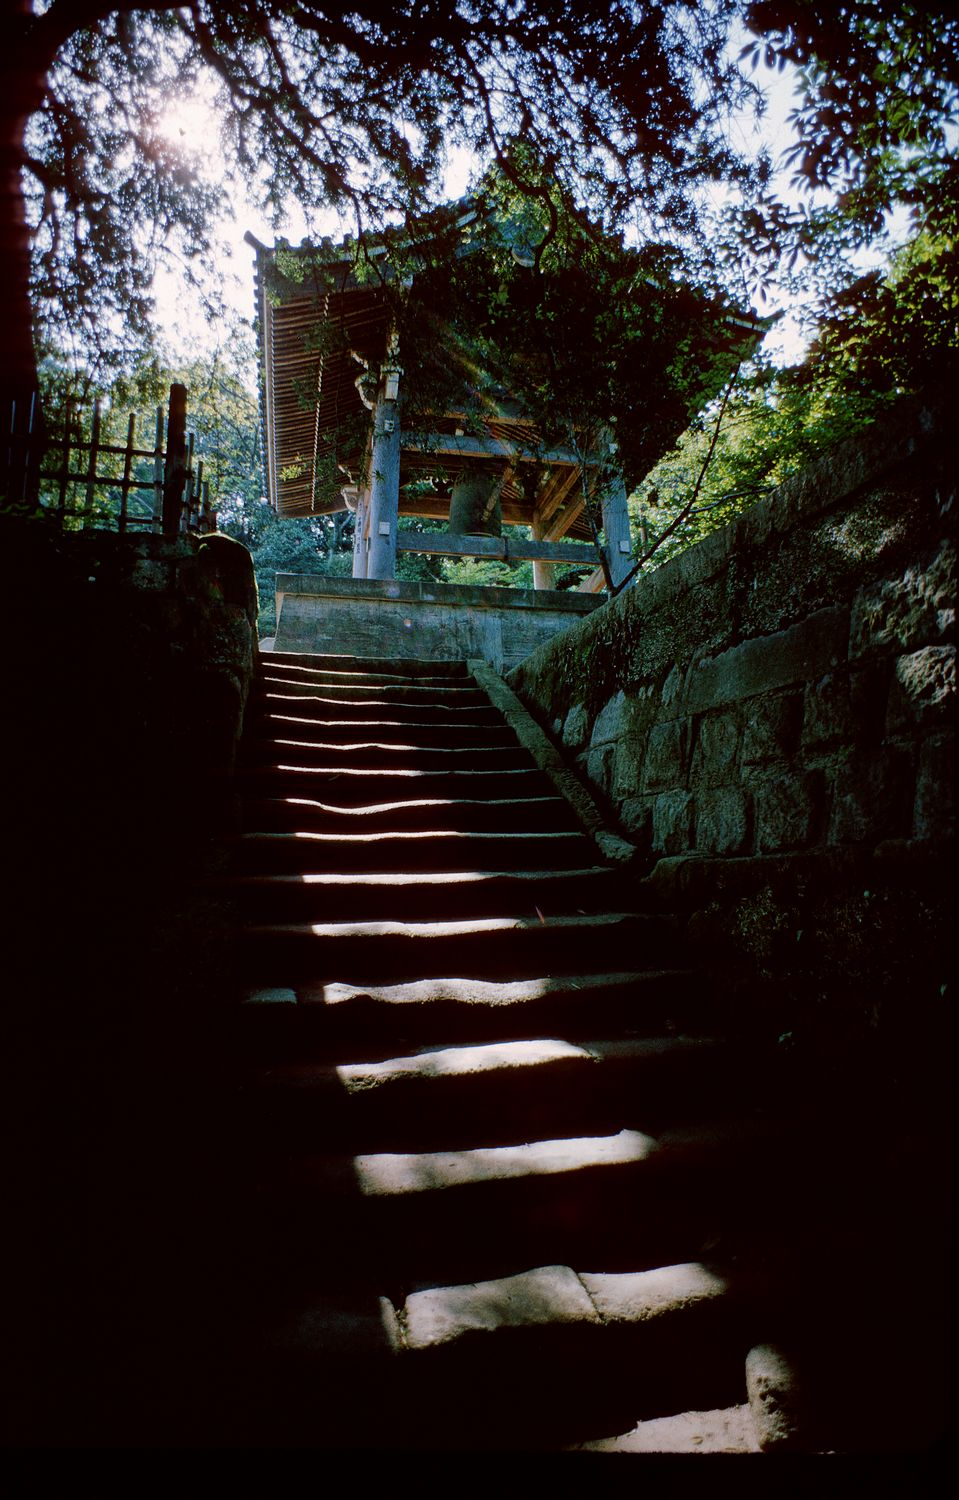 In Kamakura Japan - stairs leading up to a bell tower - canon SLR with 19mm lens, Kodachrome - Going over to the dark side - Tony Karp, design, art, photography, techno-impressionist, techno-impressionism, aerial photography , drone , drones , dji , mavic pro , video , 3D printing - Books -